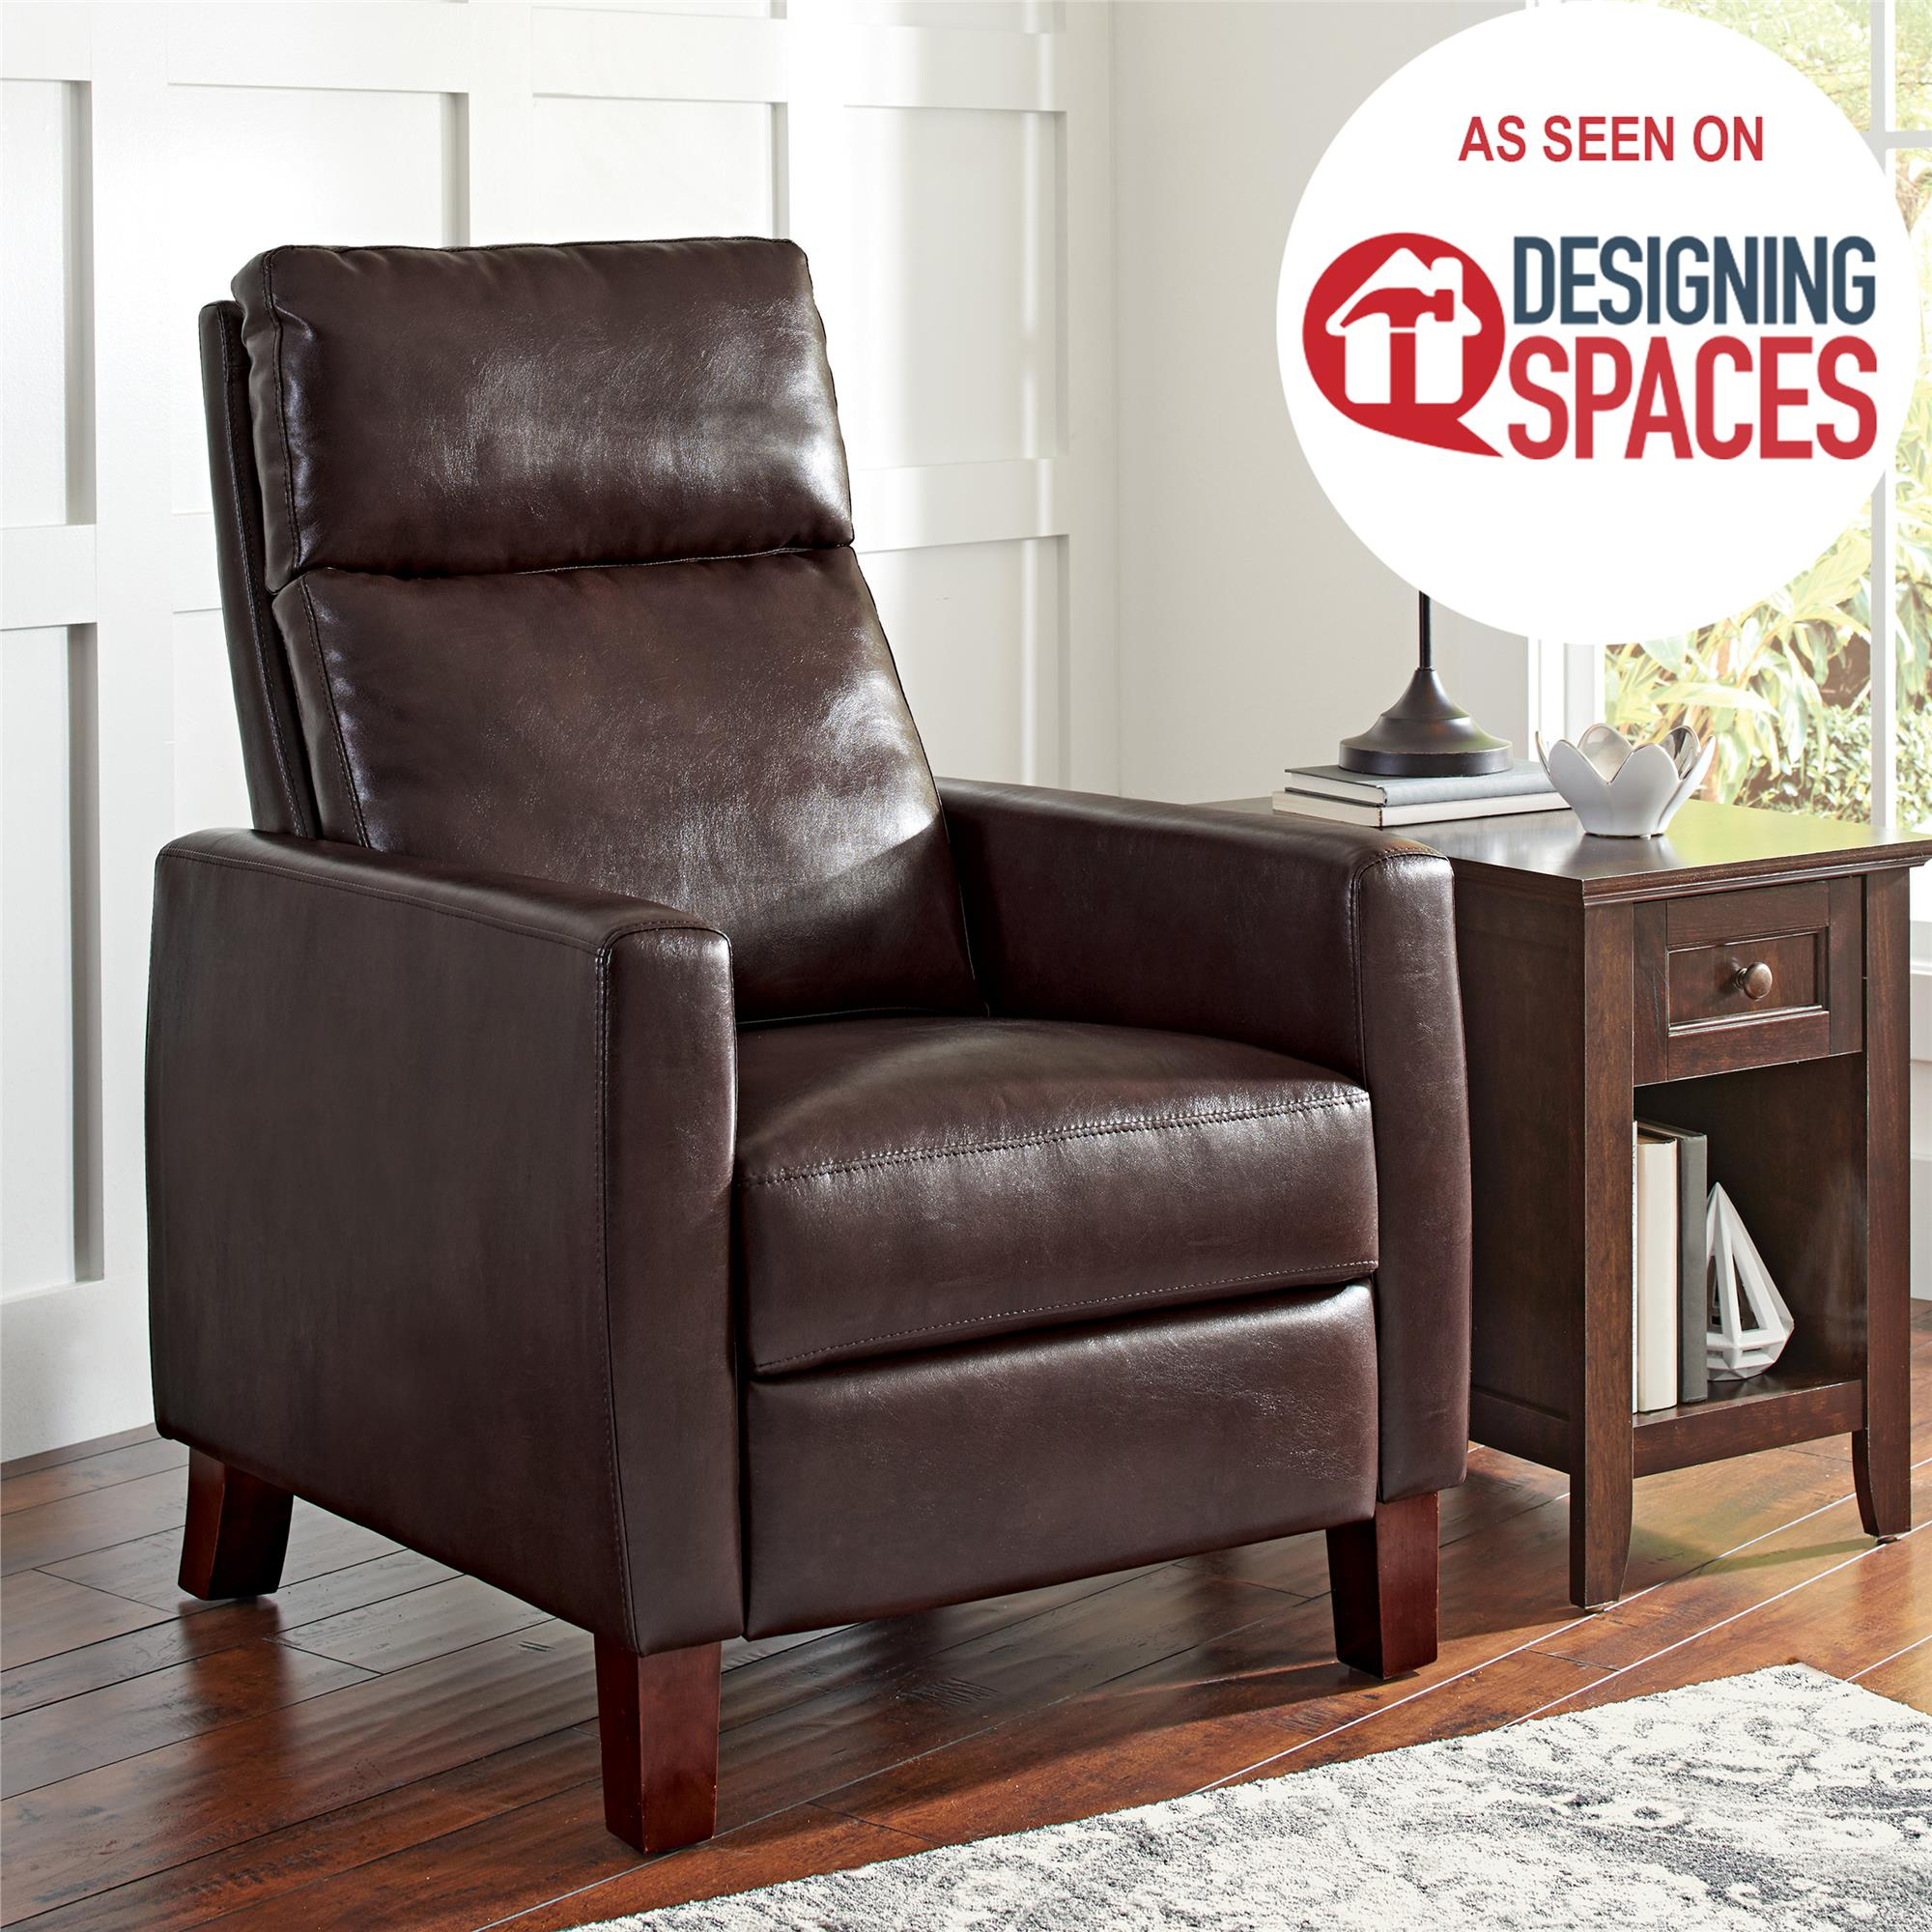 Better Homes and Gardens Adams Pushback Recliner, Multiple Colors